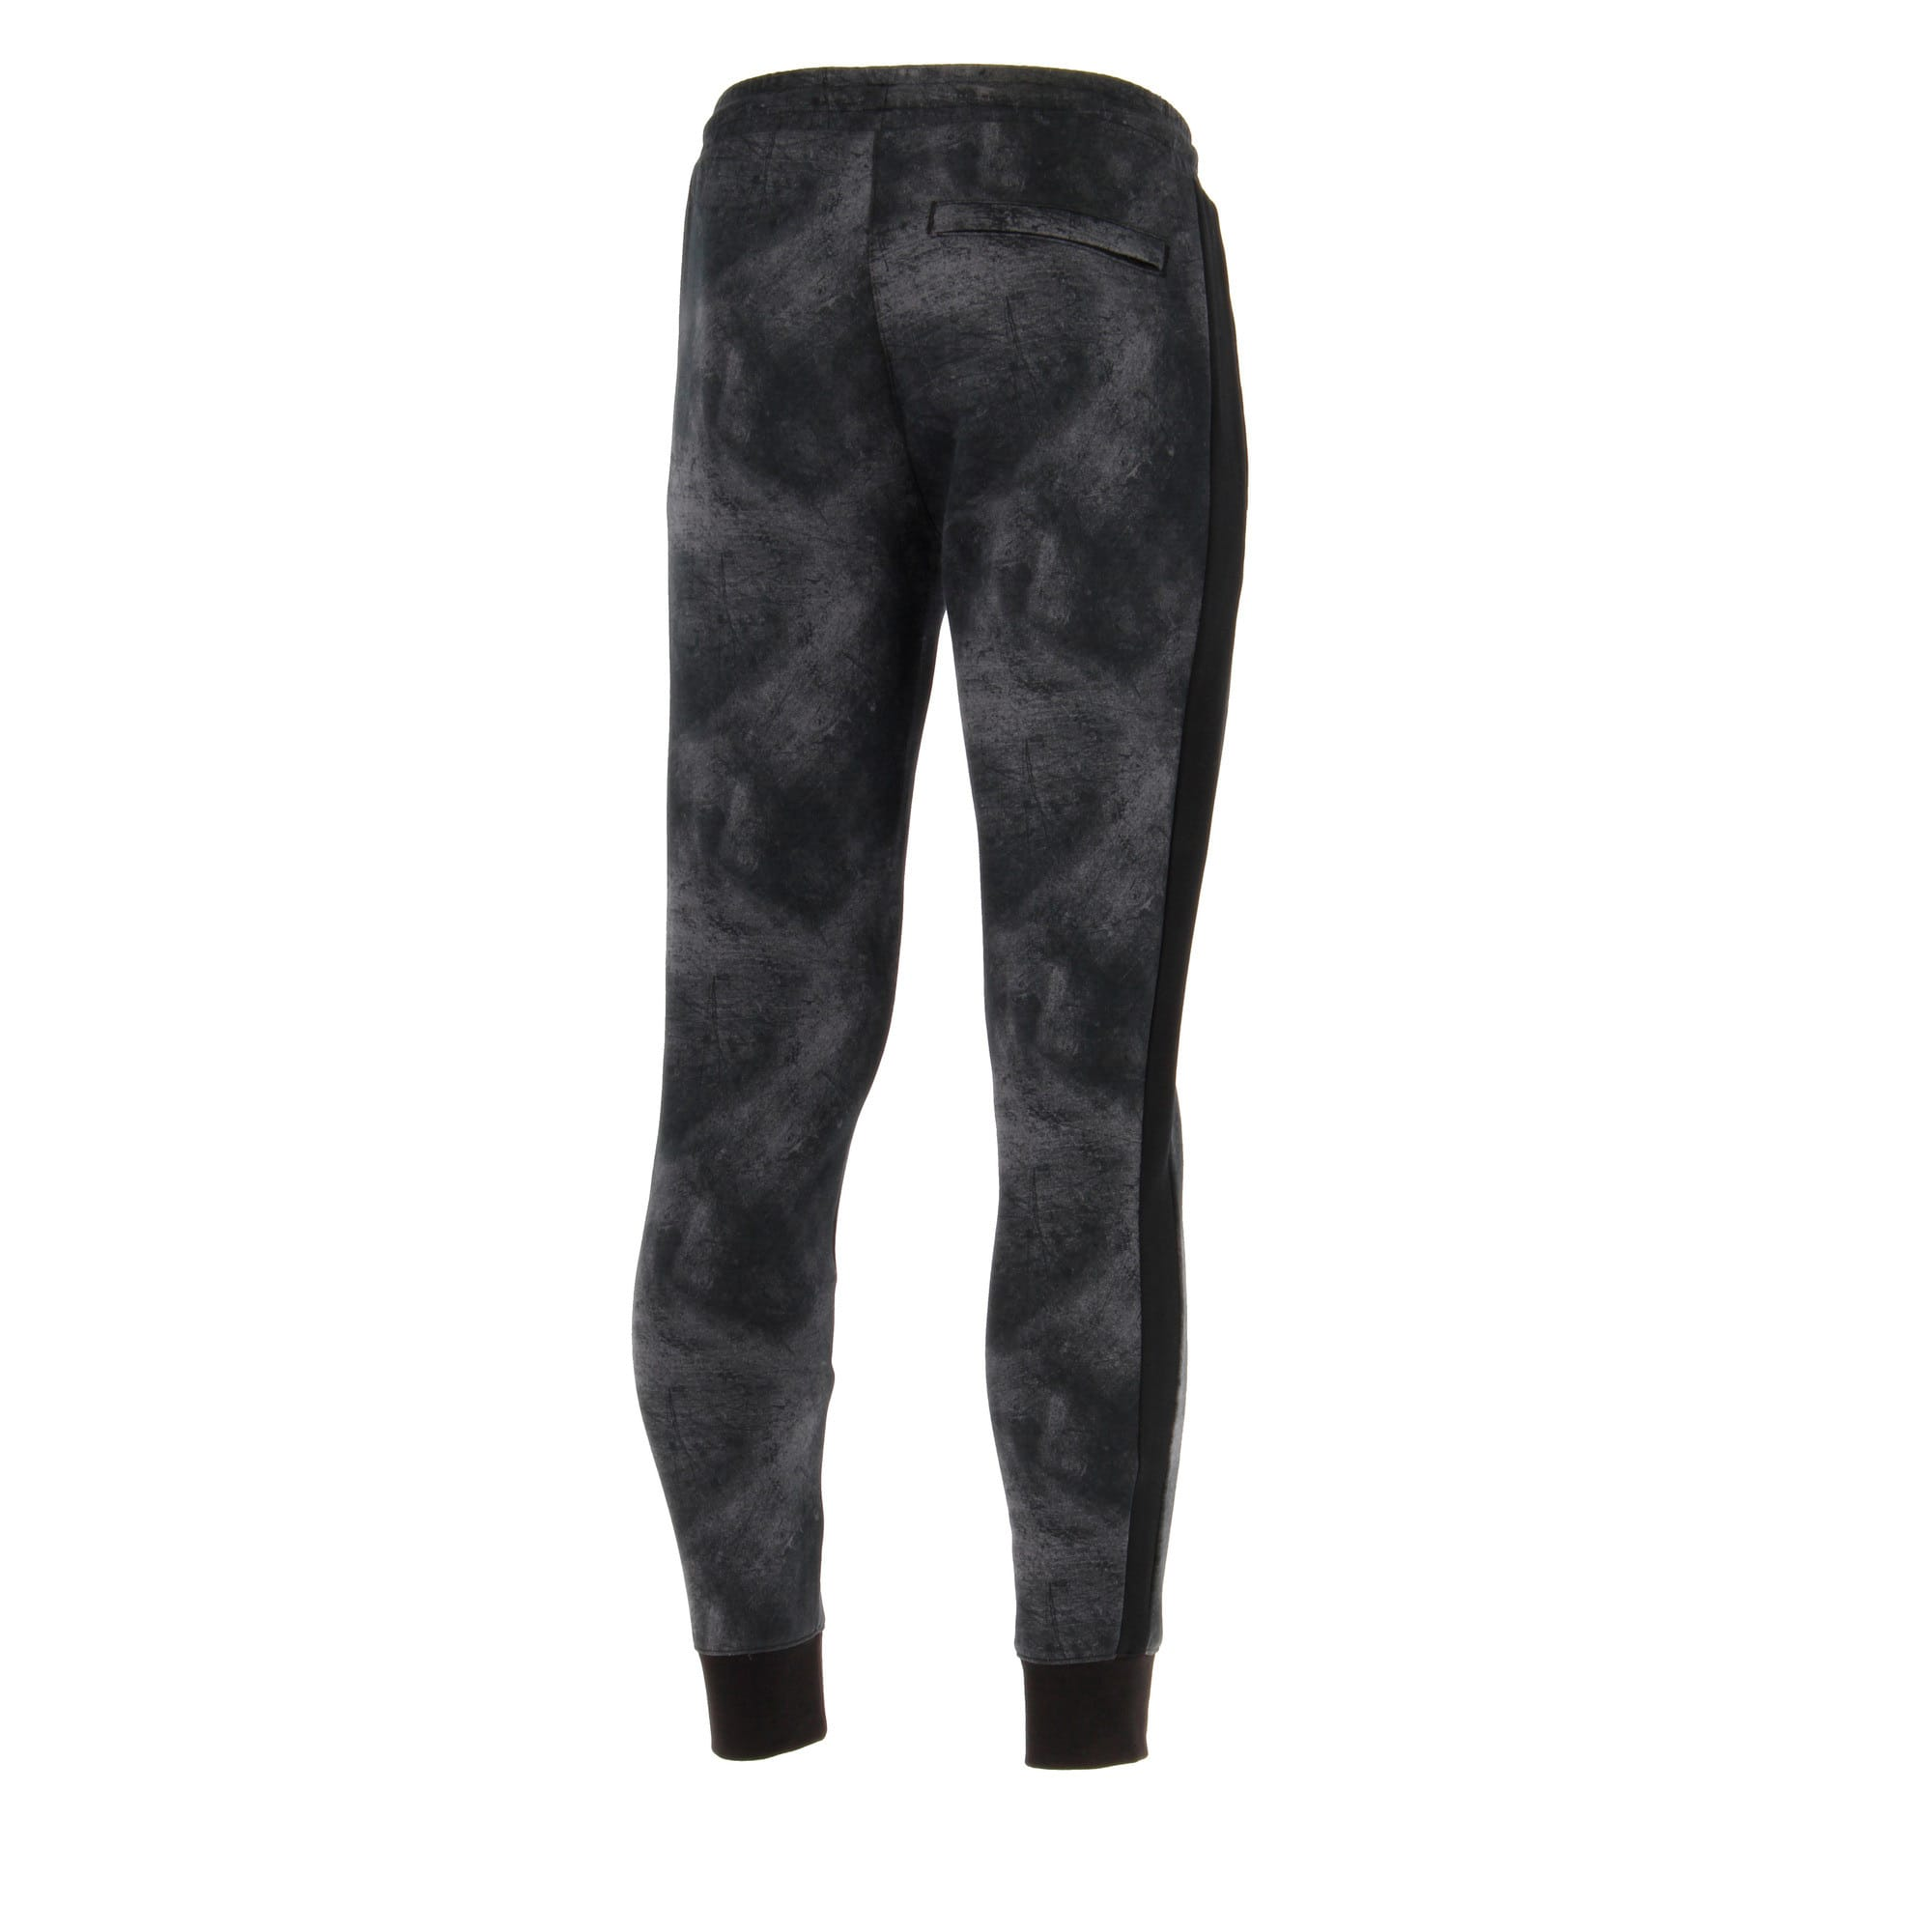 Thumbnail 3 of Classics All-Over Print T7 Men's Pants, Puma Black-3, medium